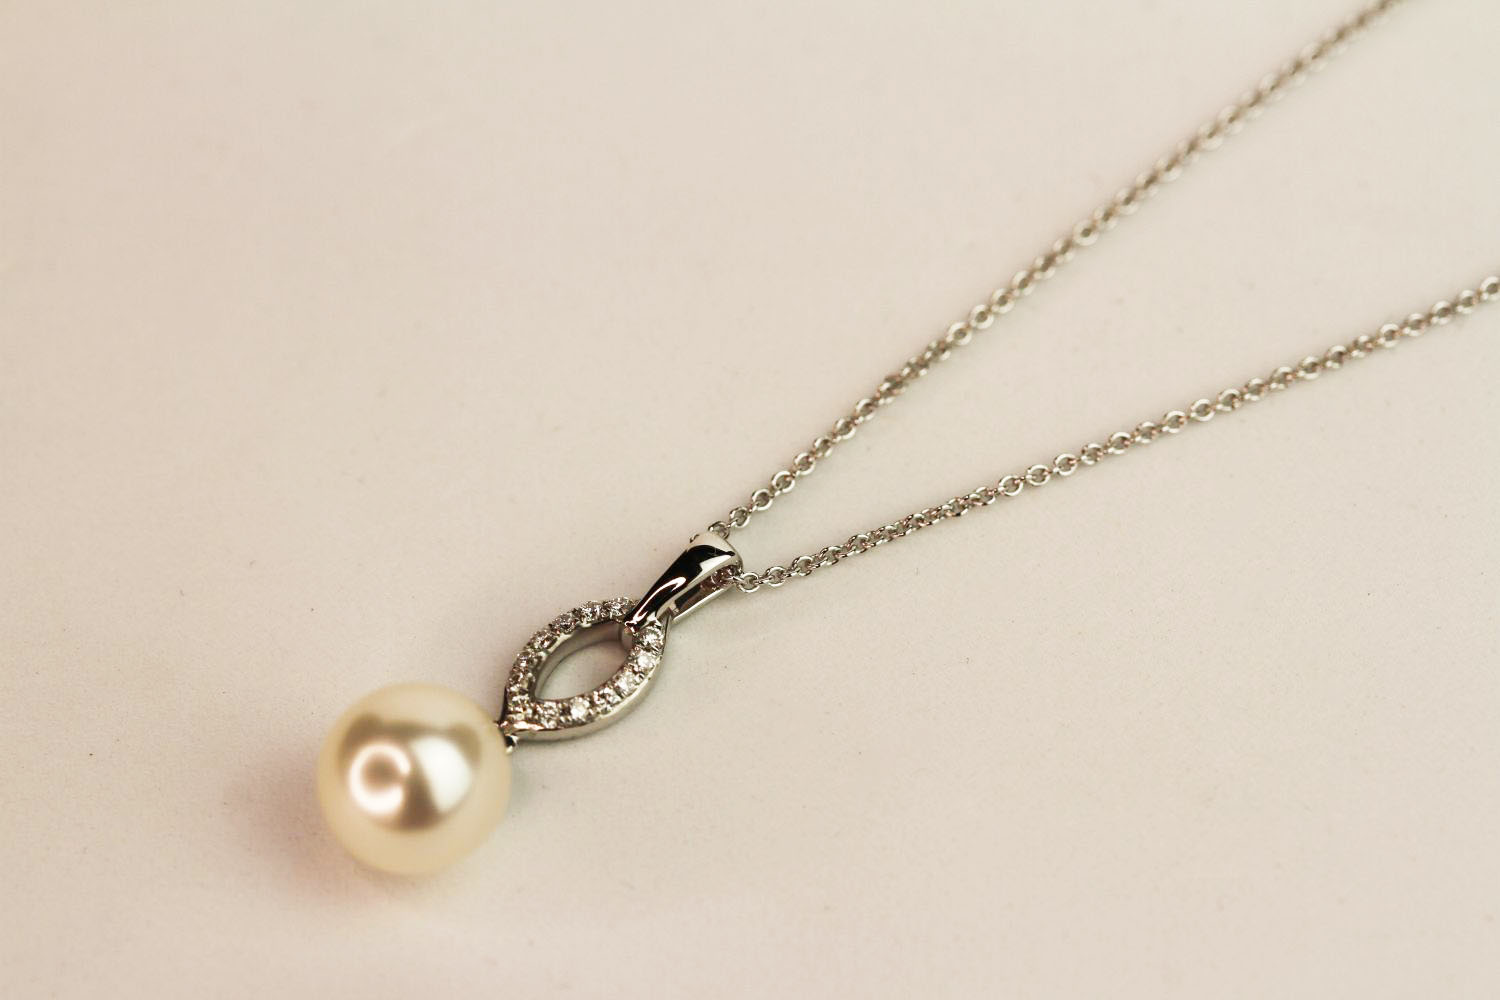 9ct white gold pearl and diamond drop pendant and chain, boxed. Diamonds 0.08ct - Image 2 of 2